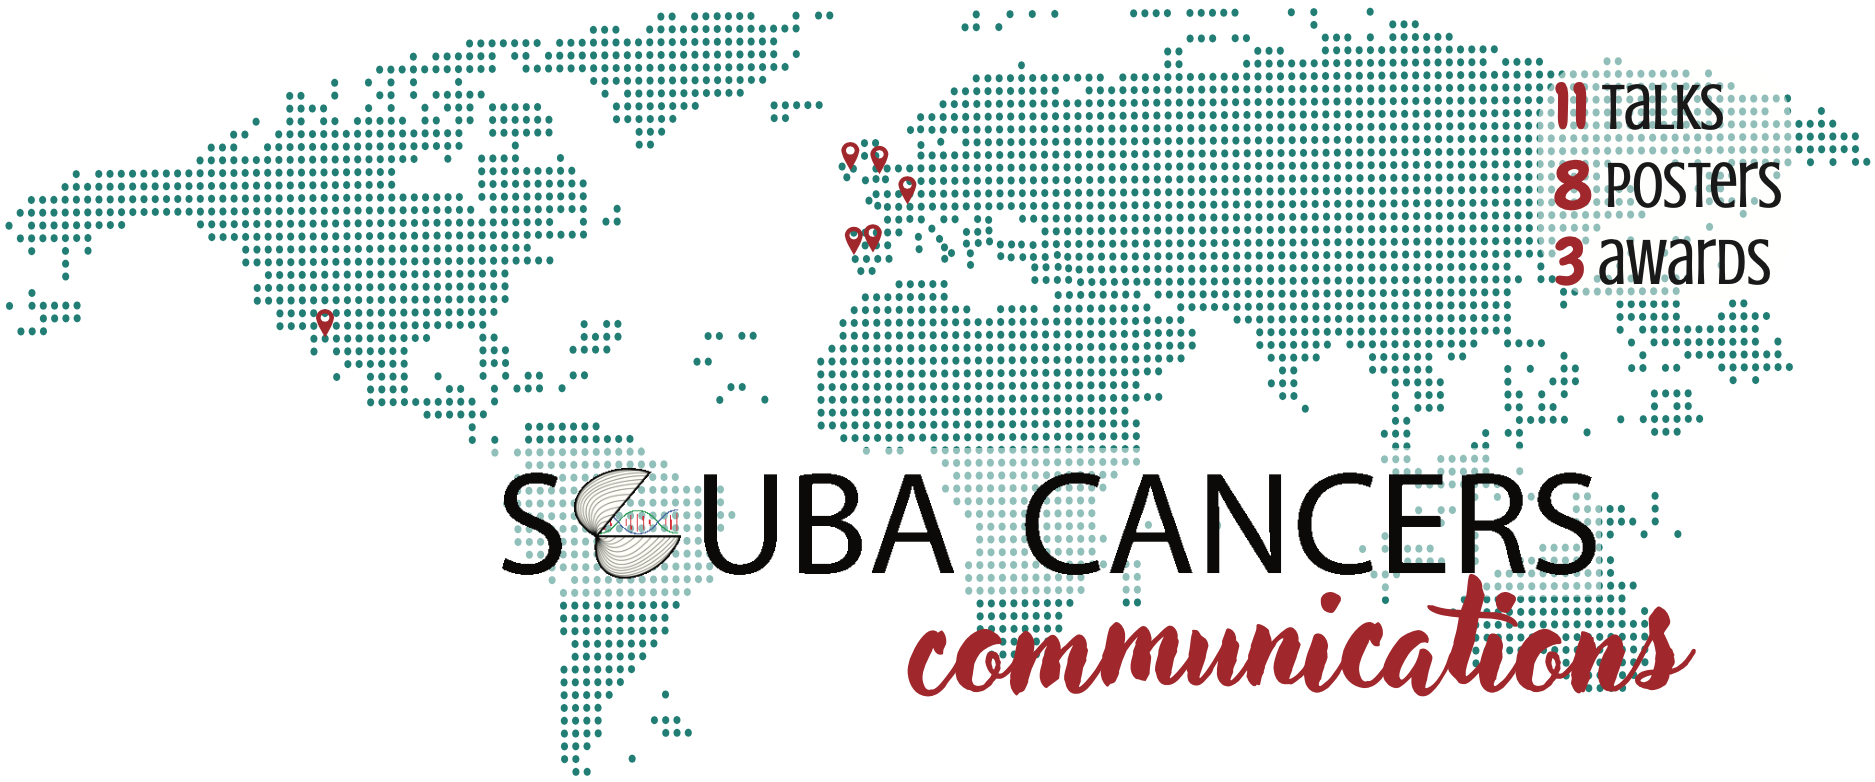 SCUBA_CANCERS_communications